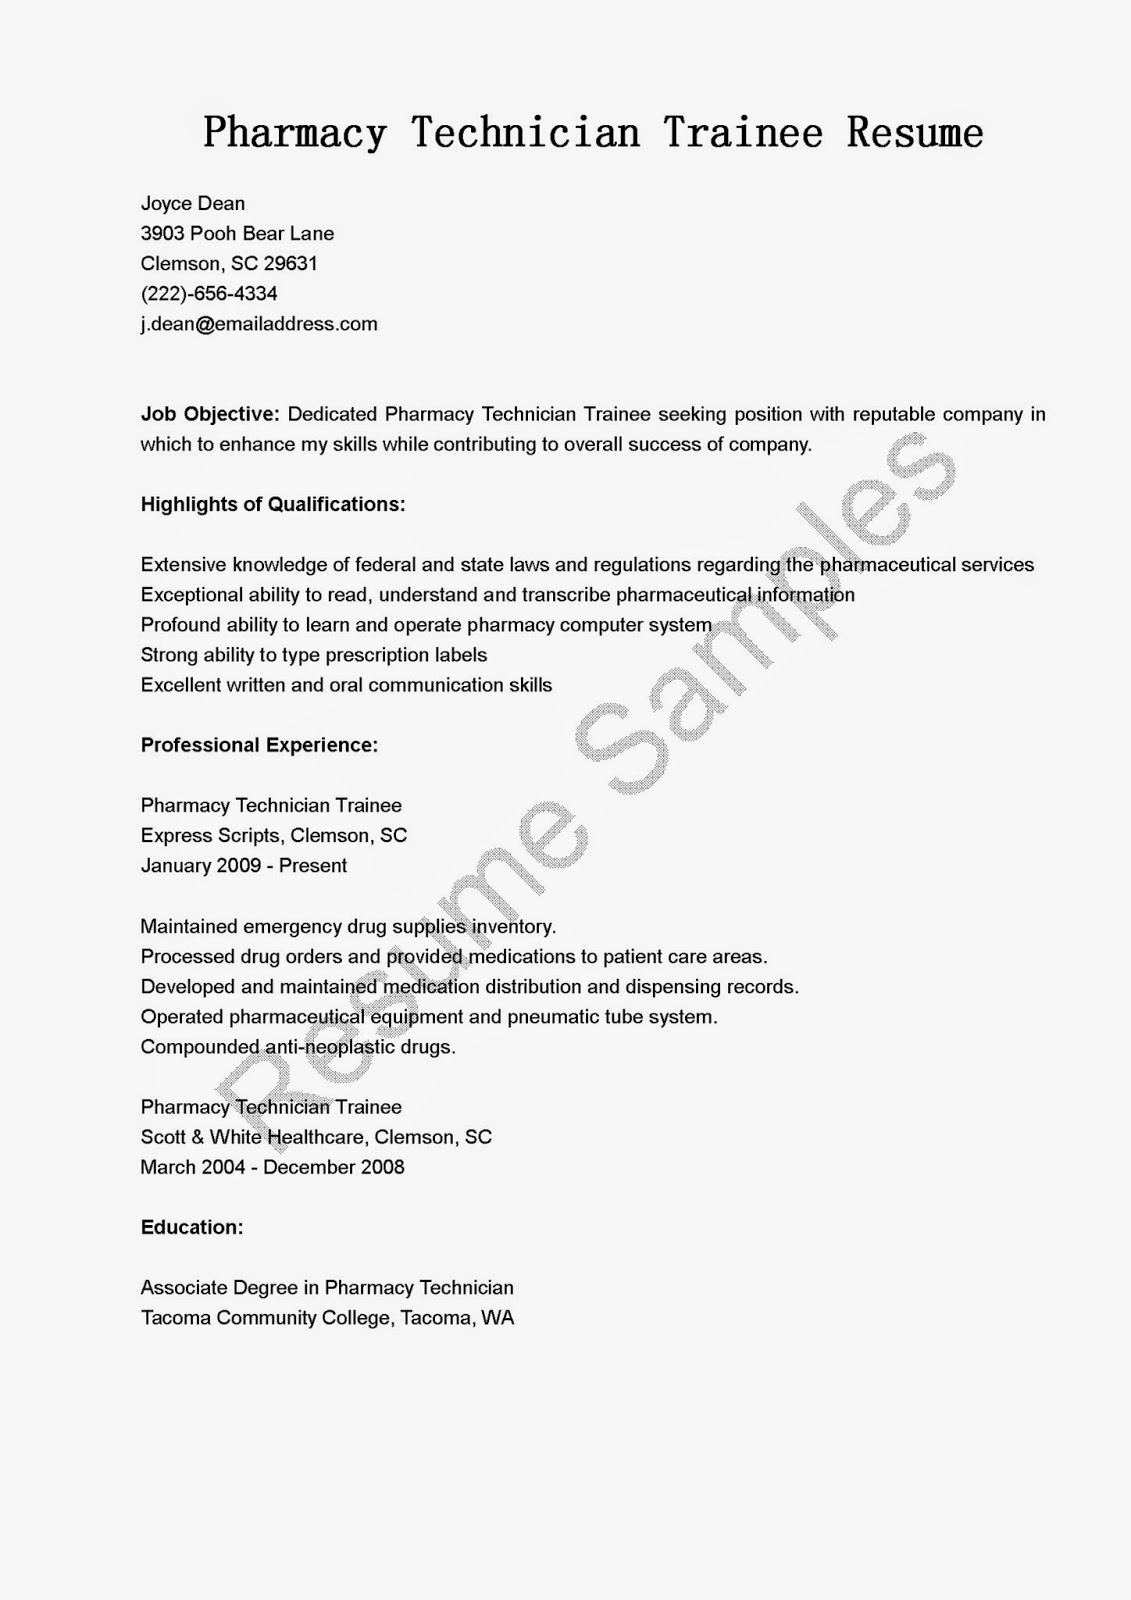 animal cell essay animal caretaker cover letter argumentative essay on stem cell pharmacy technician trainee resume film connu